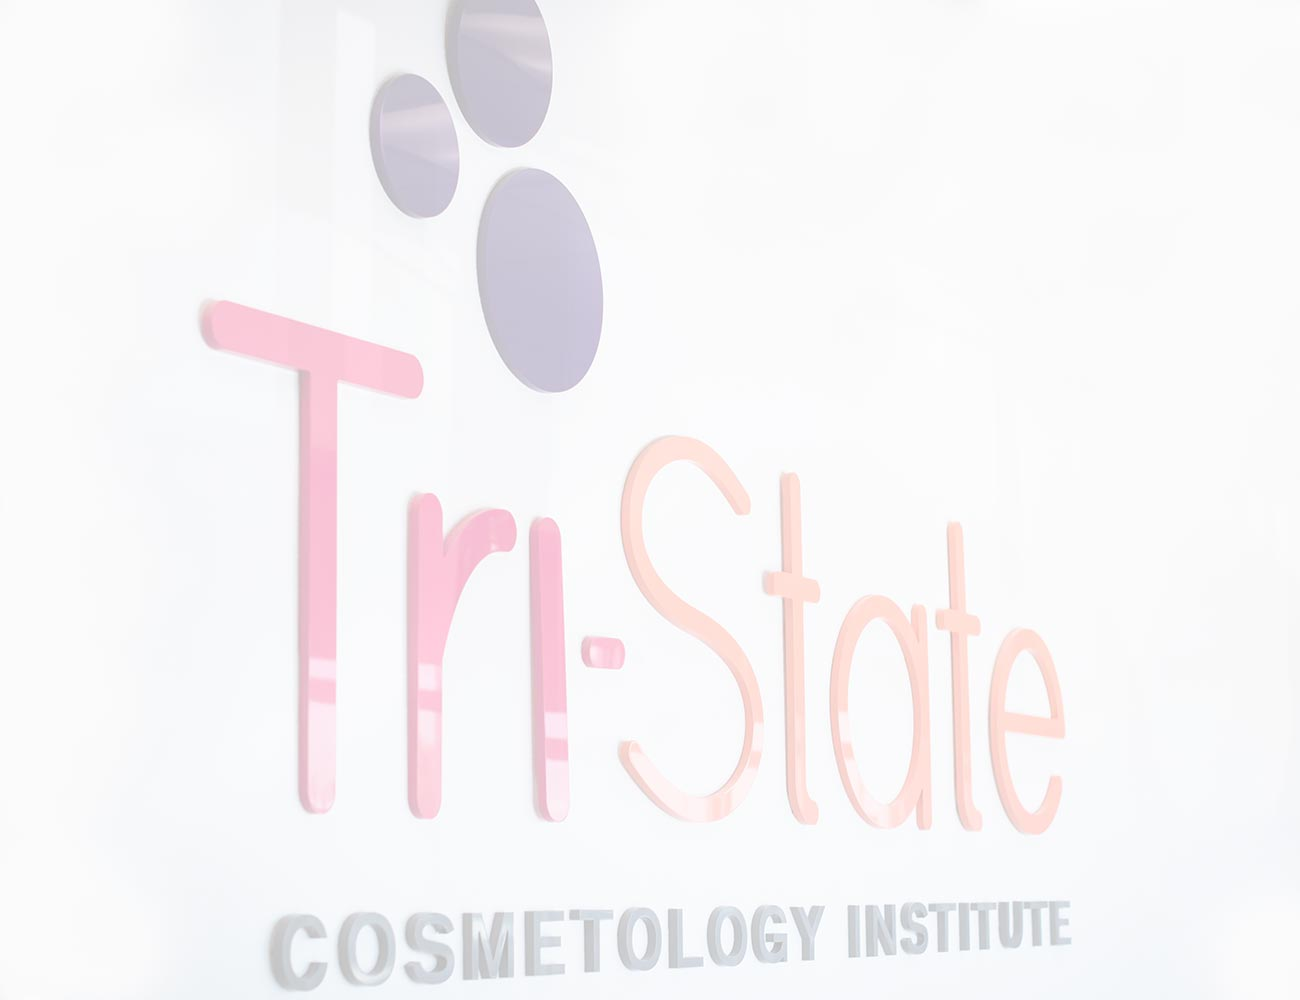 Tristate Cosmetology El Paso Background1 Tristate Cosmetology